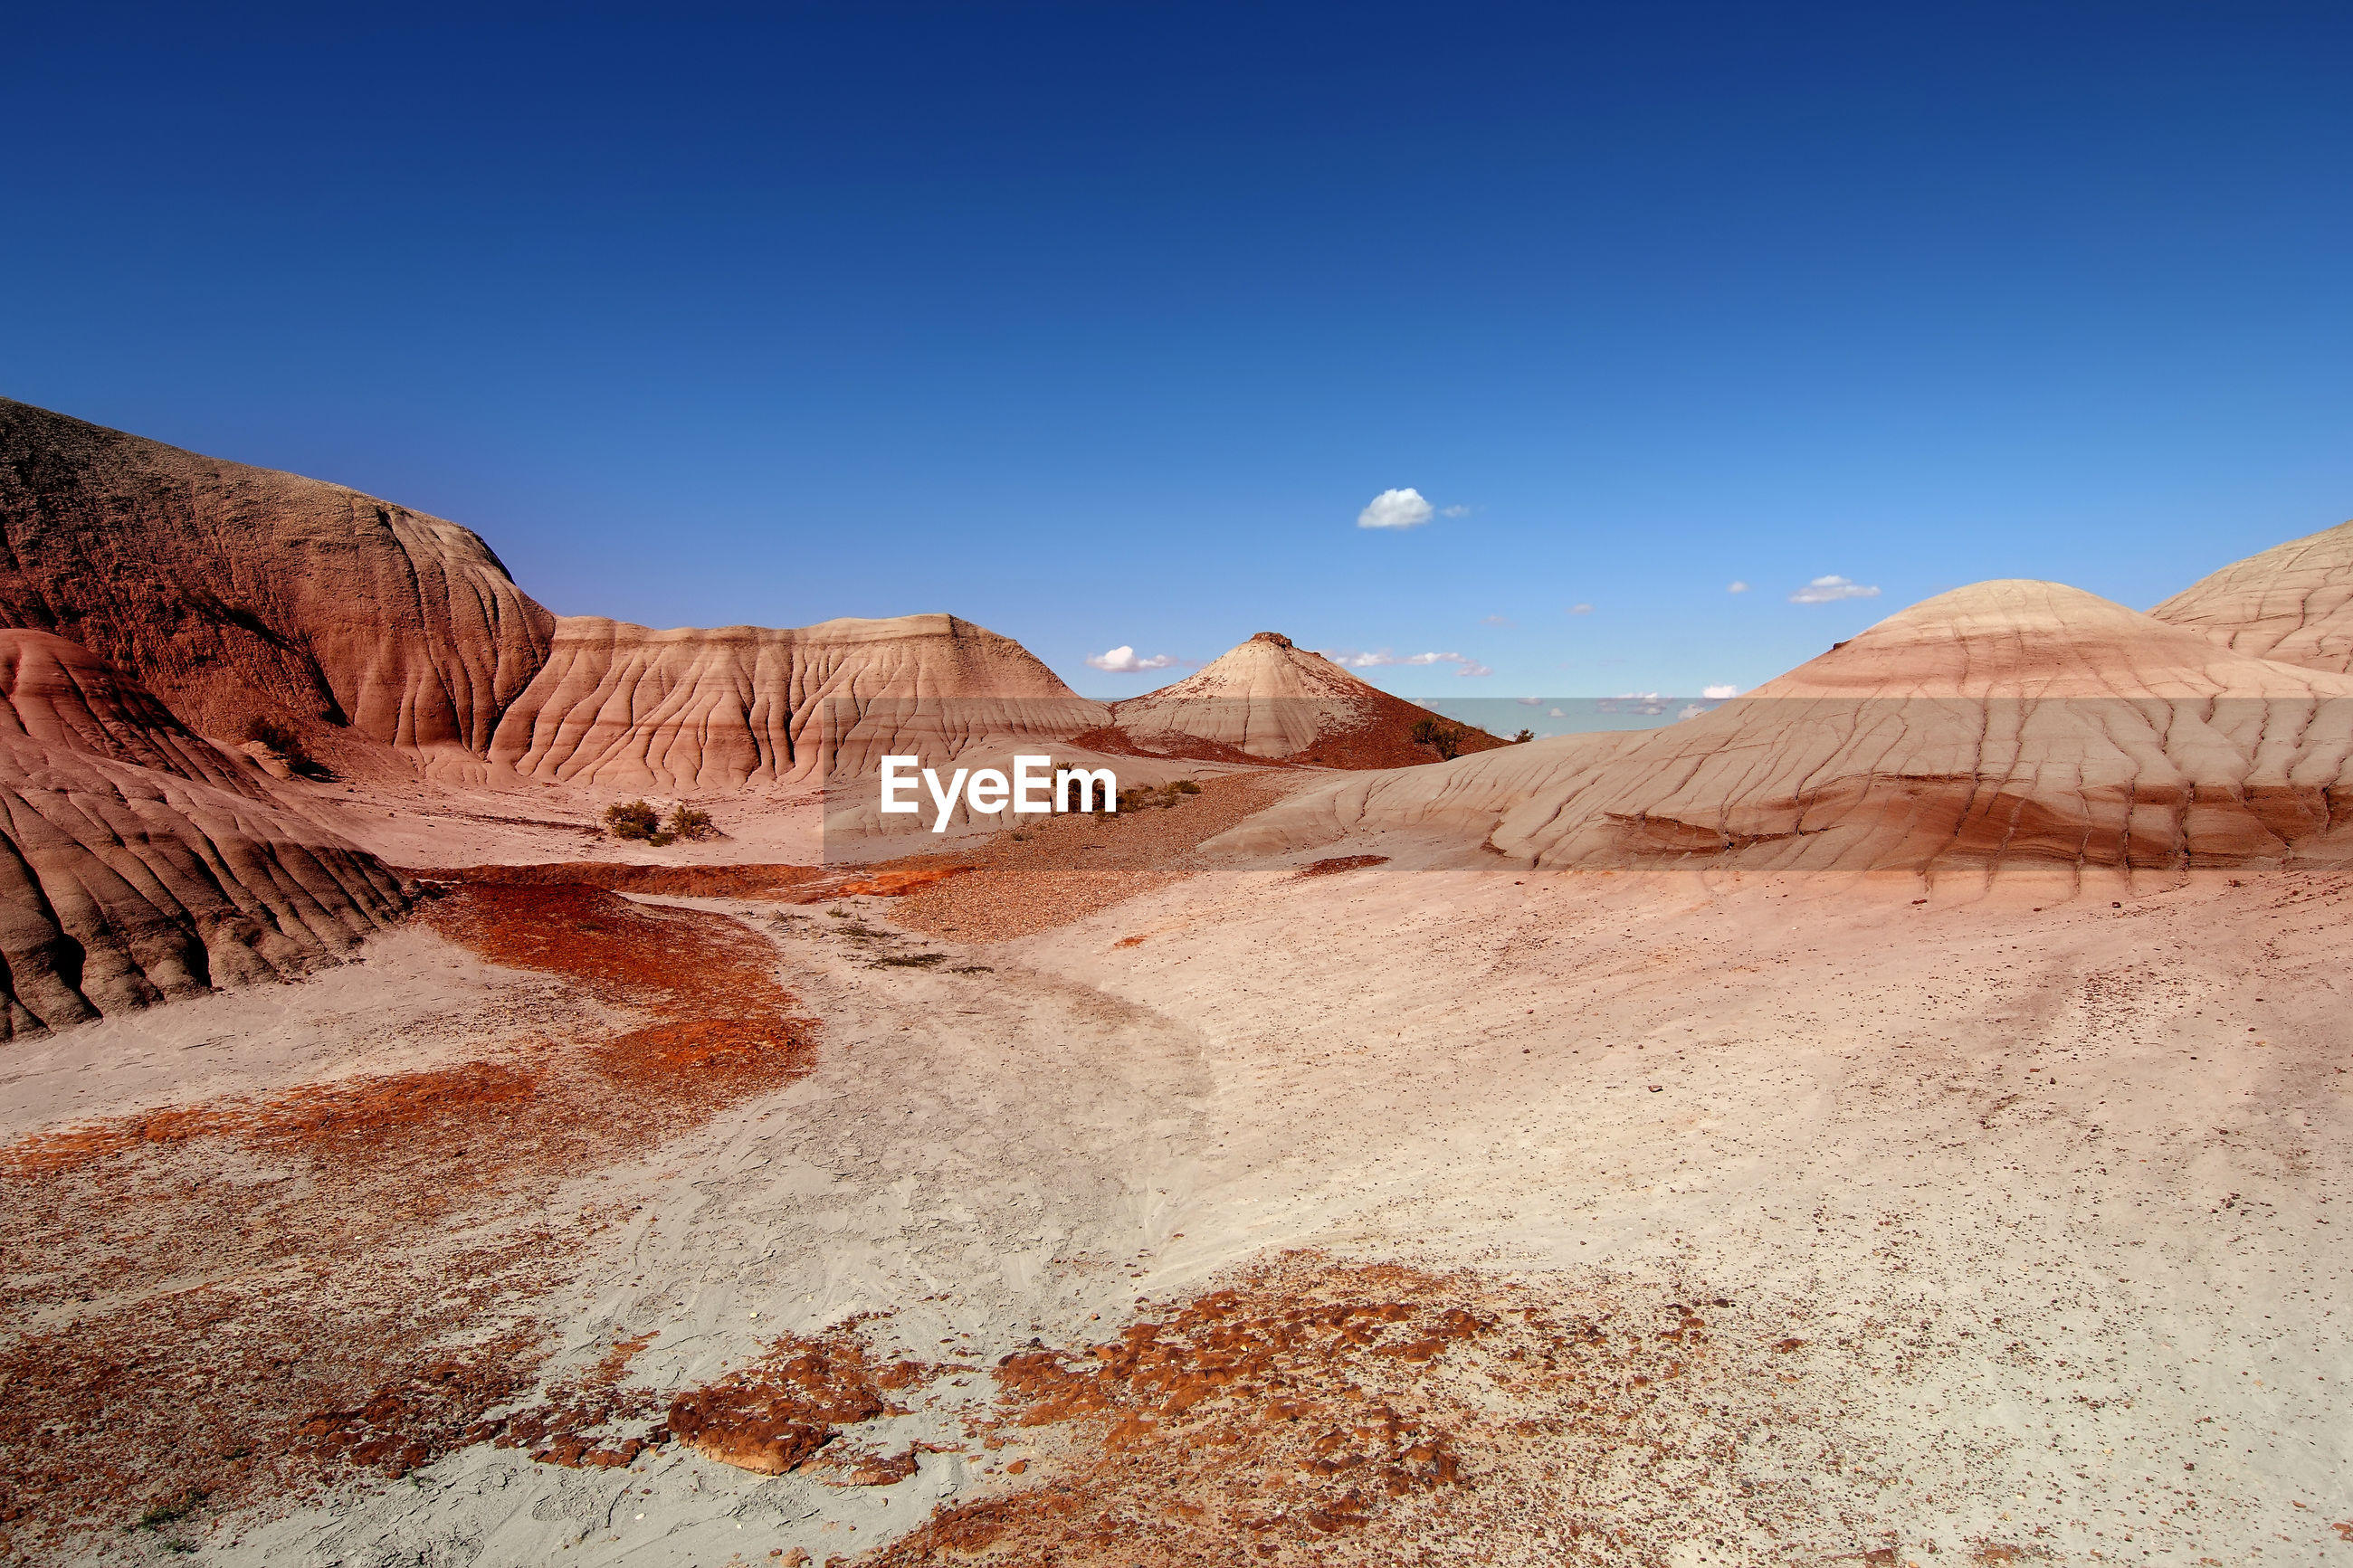 scenics - nature, sky, non-urban scene, tranquil scene, beauty in nature, landscape, tranquility, mountain, environment, clear sky, desert, nature, arid climate, blue, land, geology, no people, travel destinations, physical geography, climate, mountain range, outdoors, formation, eroded